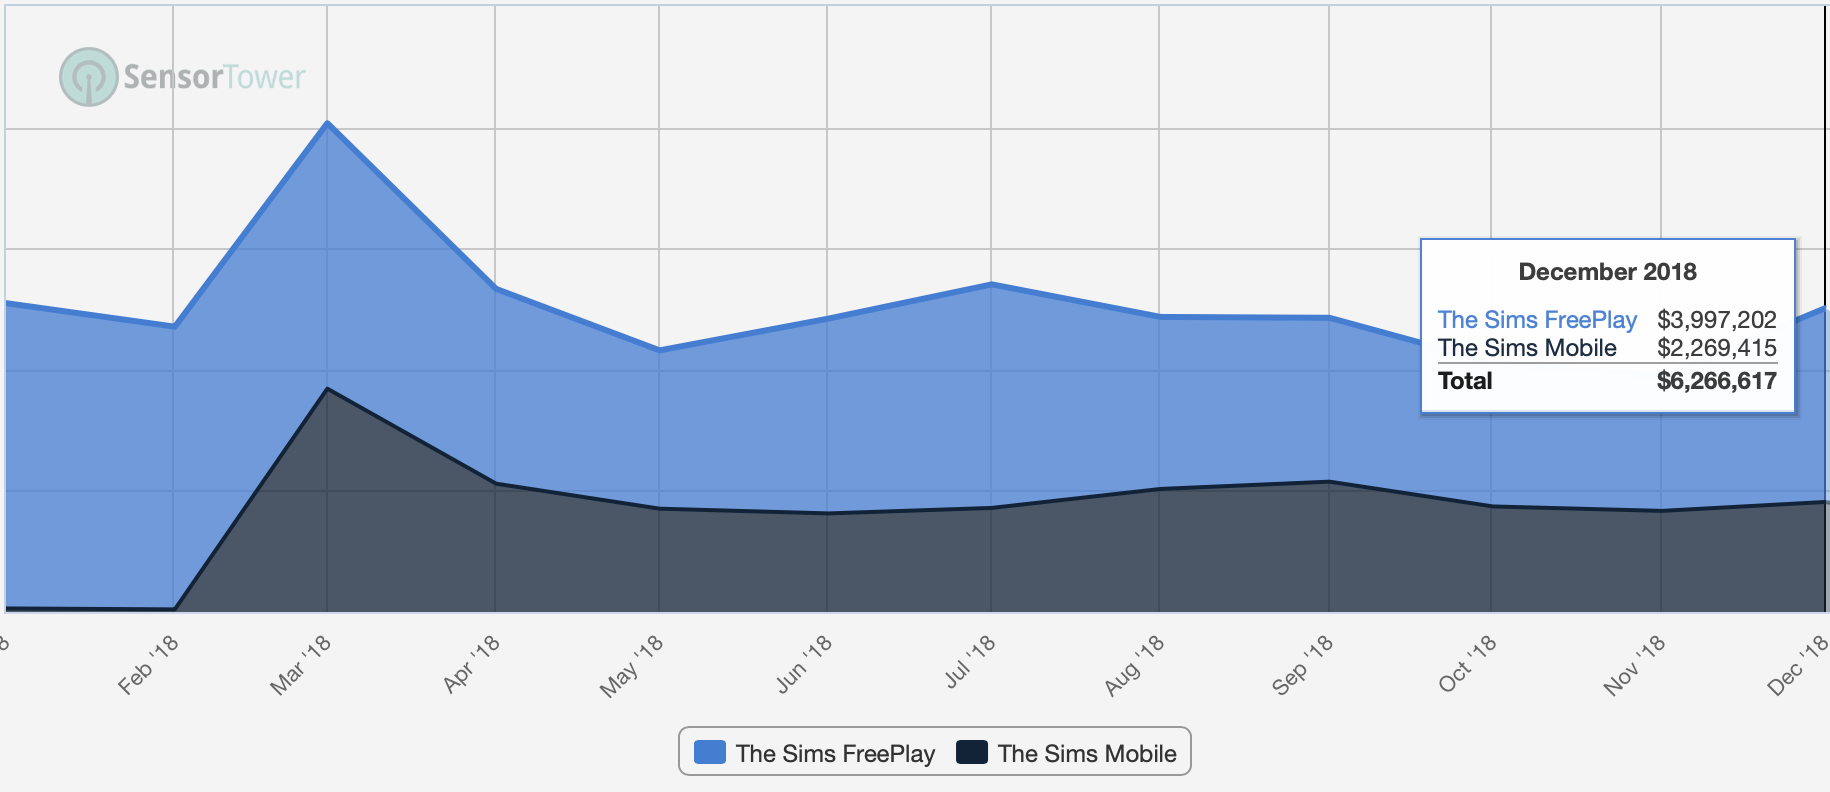 Today Sims Mobile and Sims FreePlay make just as much in revenue as Sims FreePlay did alone just a year ago. In other words, same amount of revenue with a multiple of cost. Undoubtedly not something EA was gunning for.